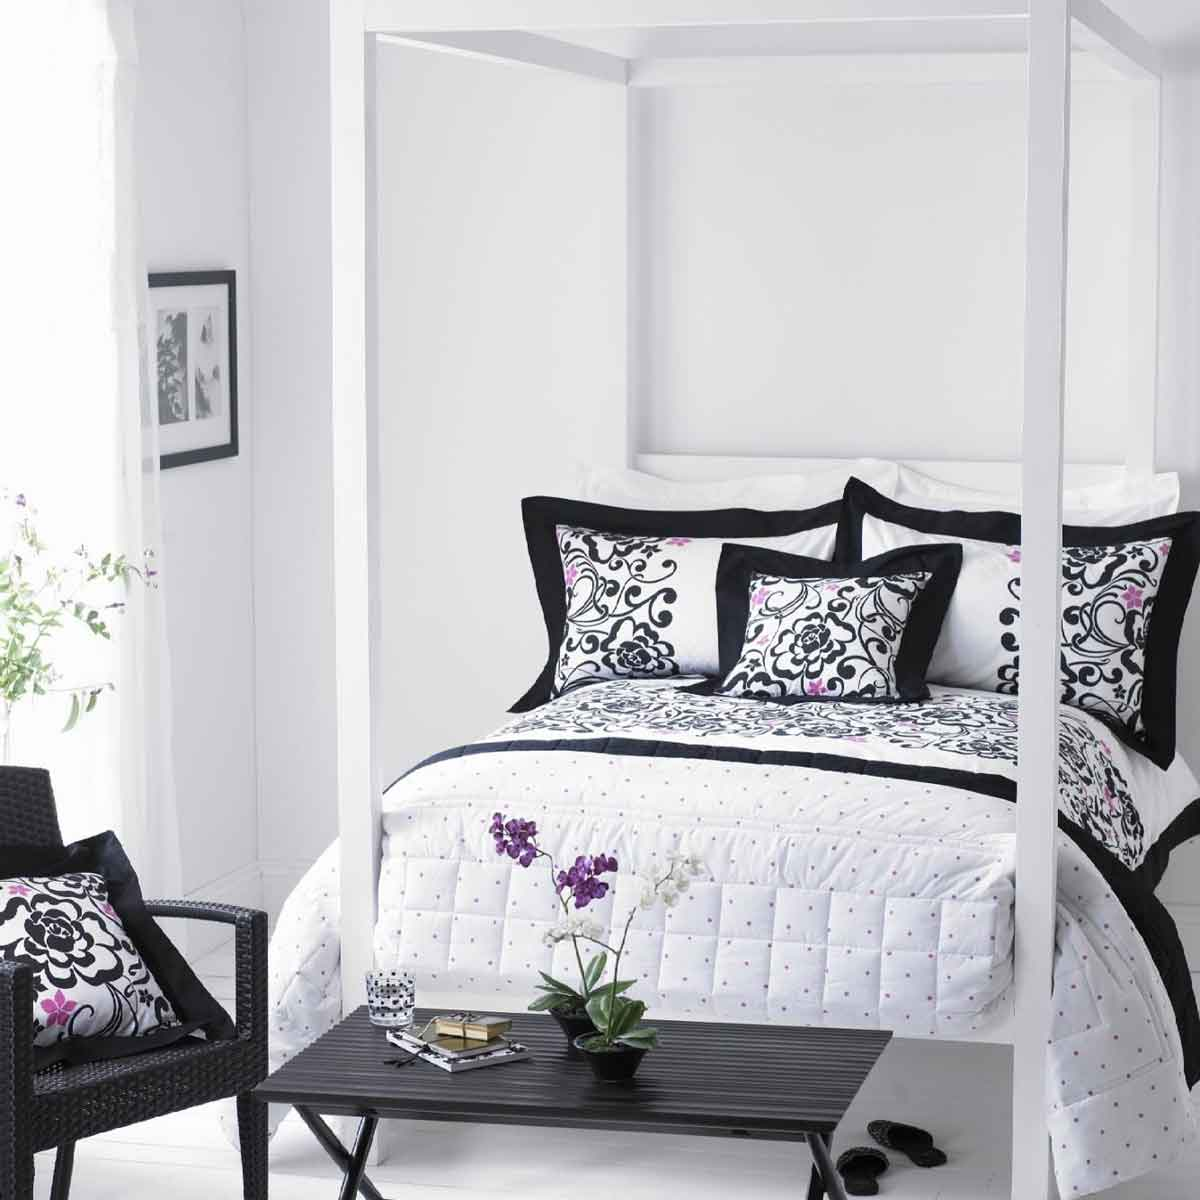 Modern Black And White Bedroom Ideas: black and white room designs